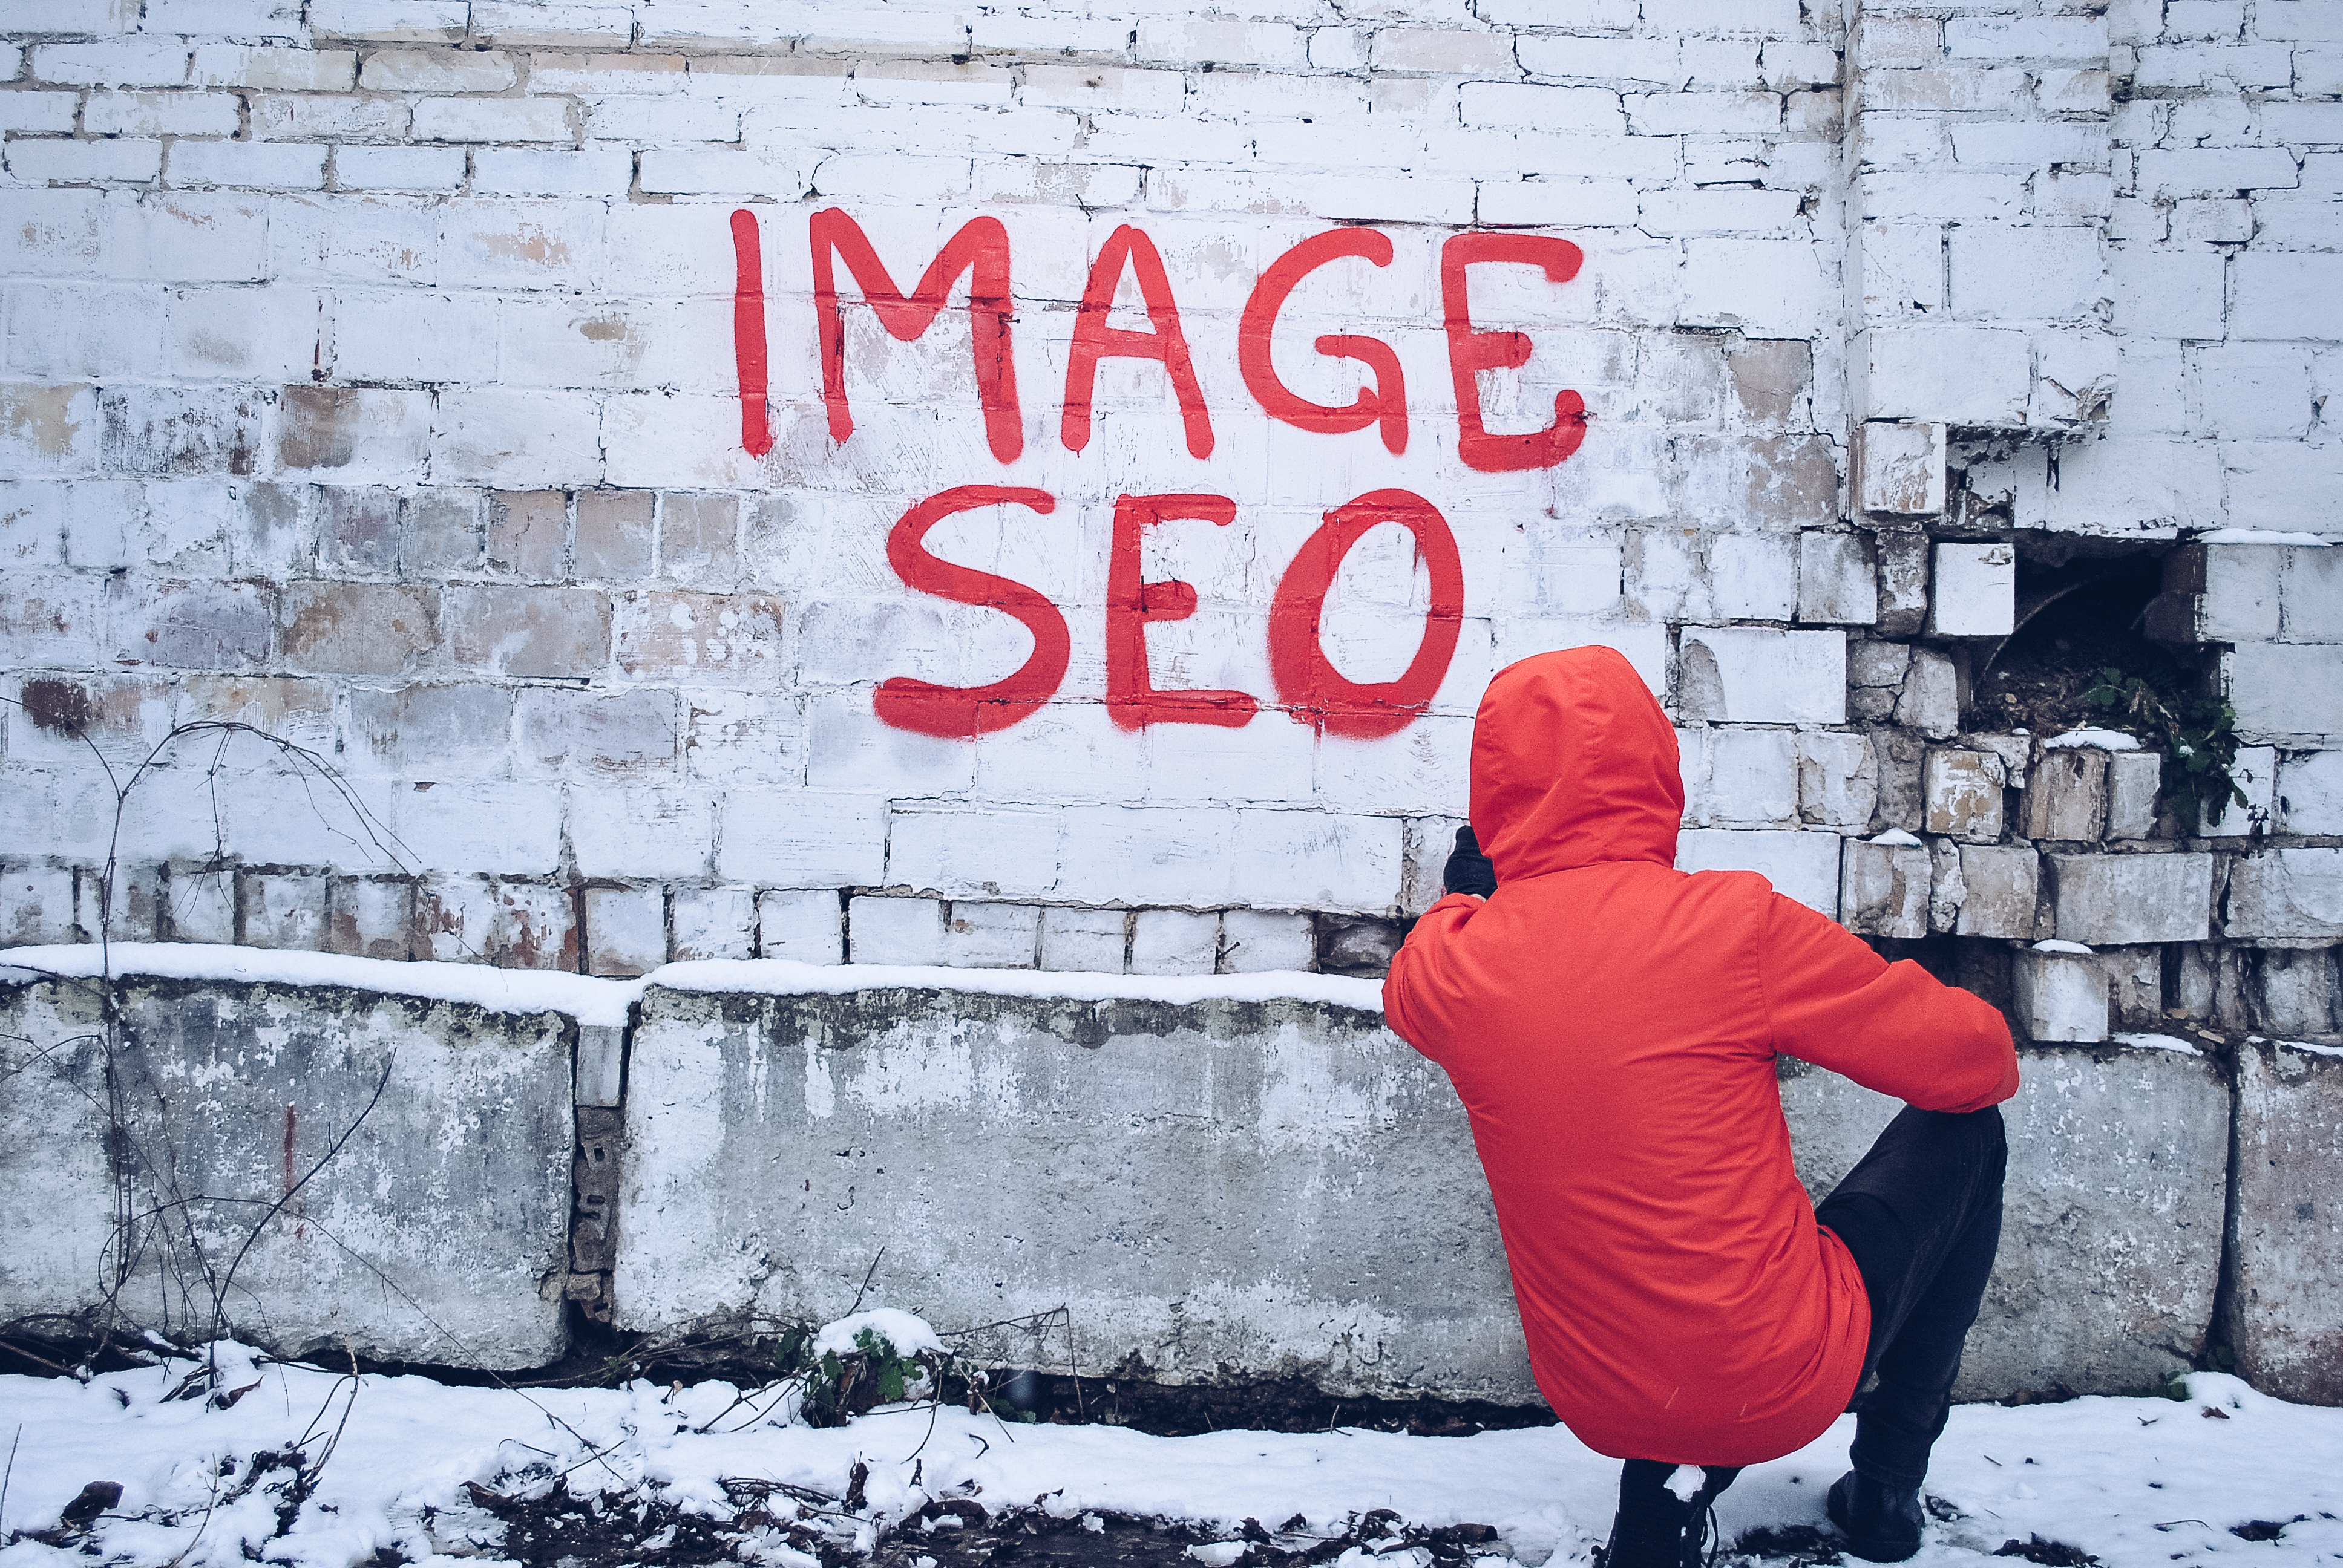 Image SEO graffiti painted by person on a brick wall